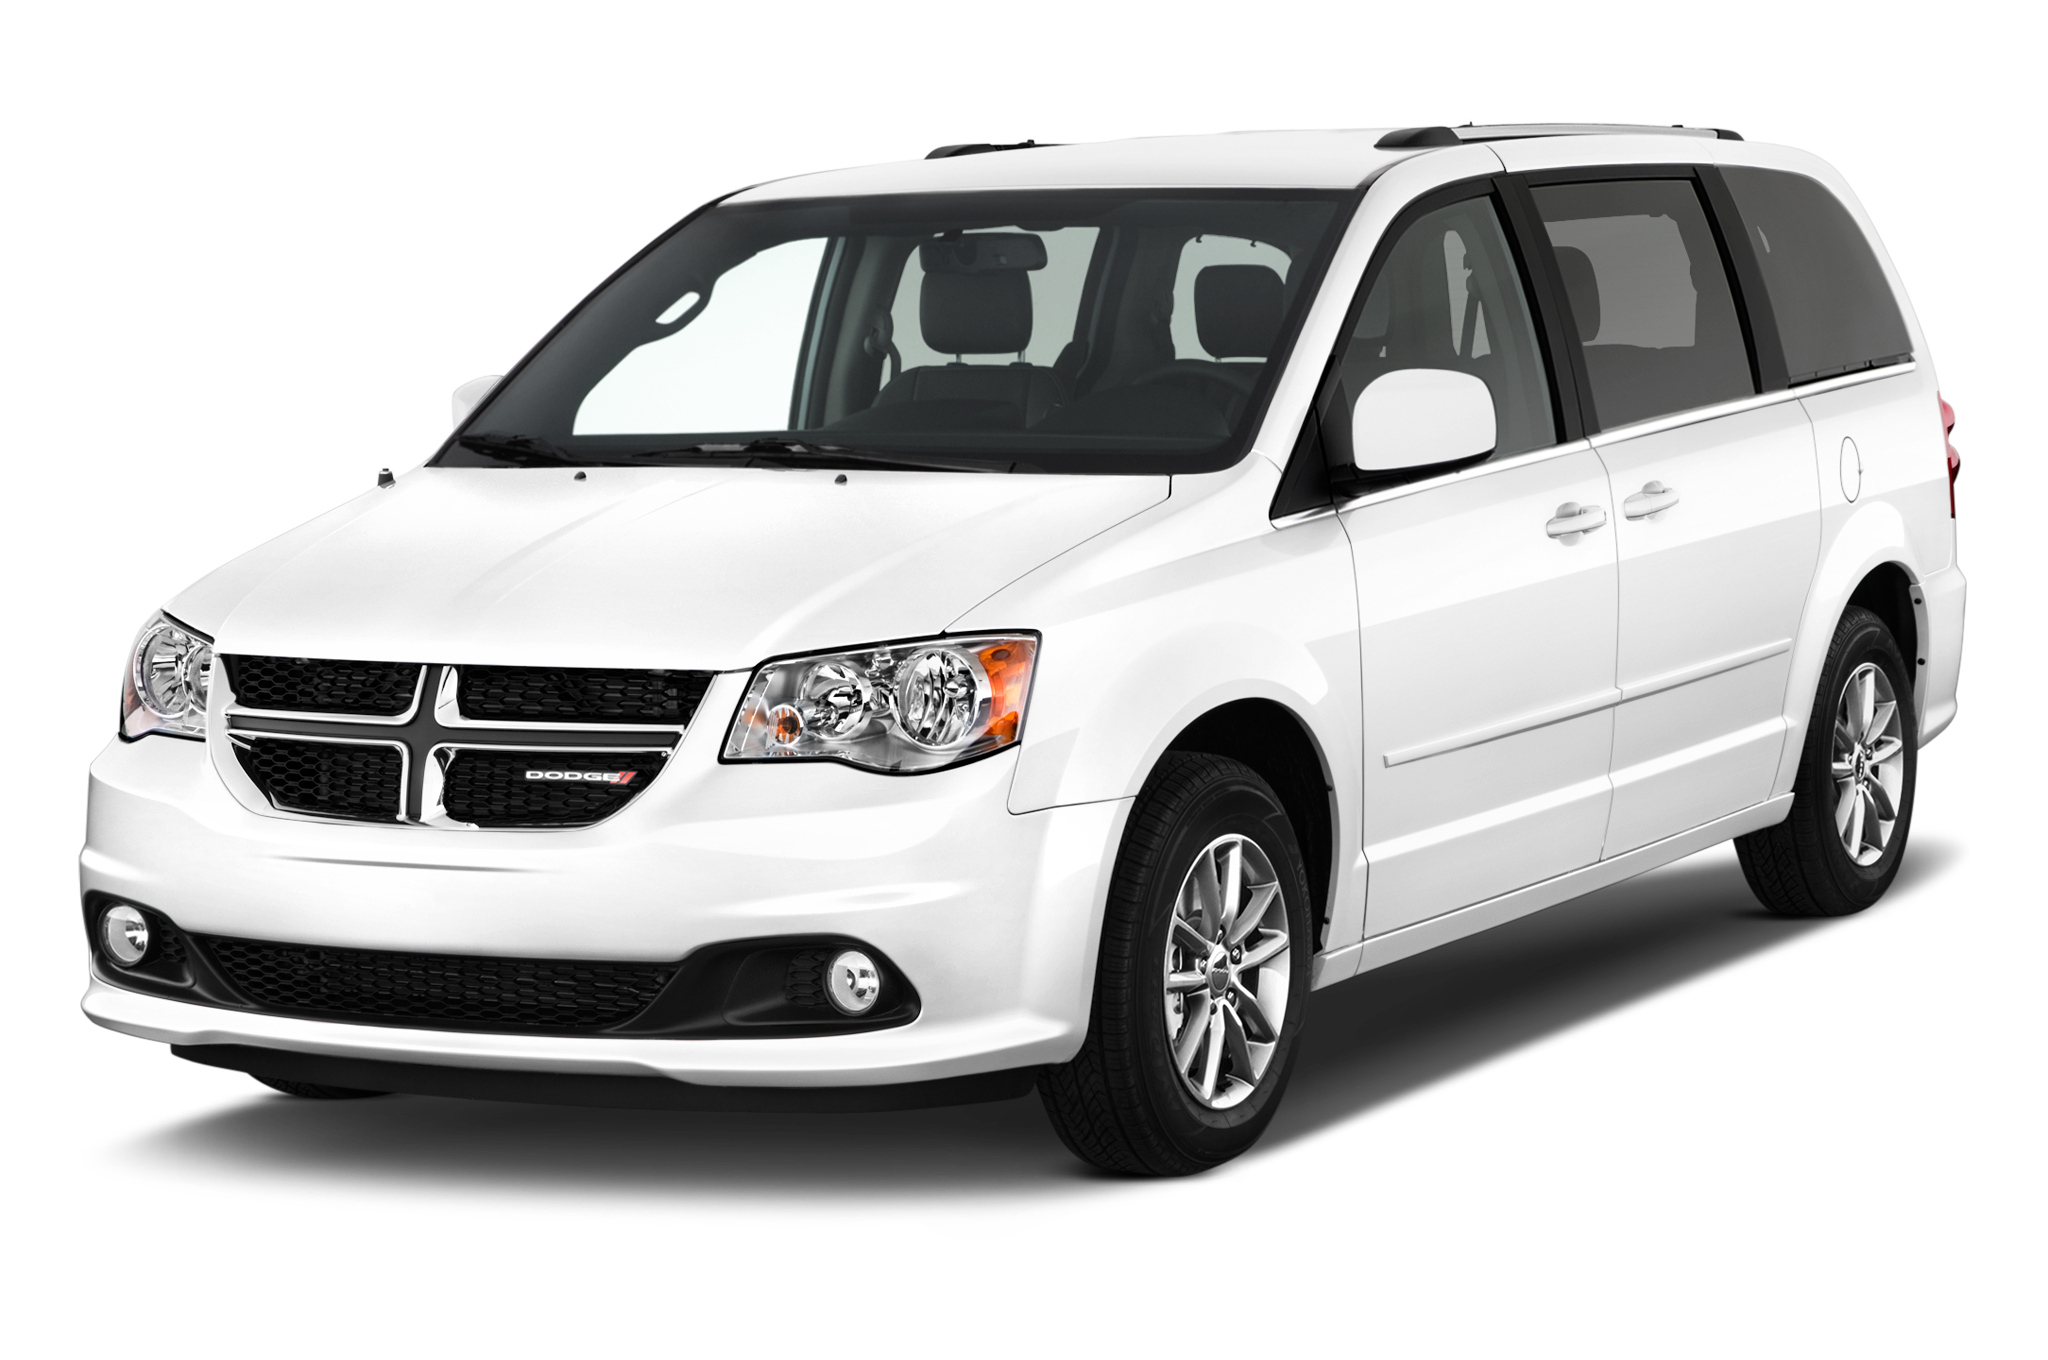 2015 dodge grand caravan sxt specs and features msn autos. Black Bedroom Furniture Sets. Home Design Ideas